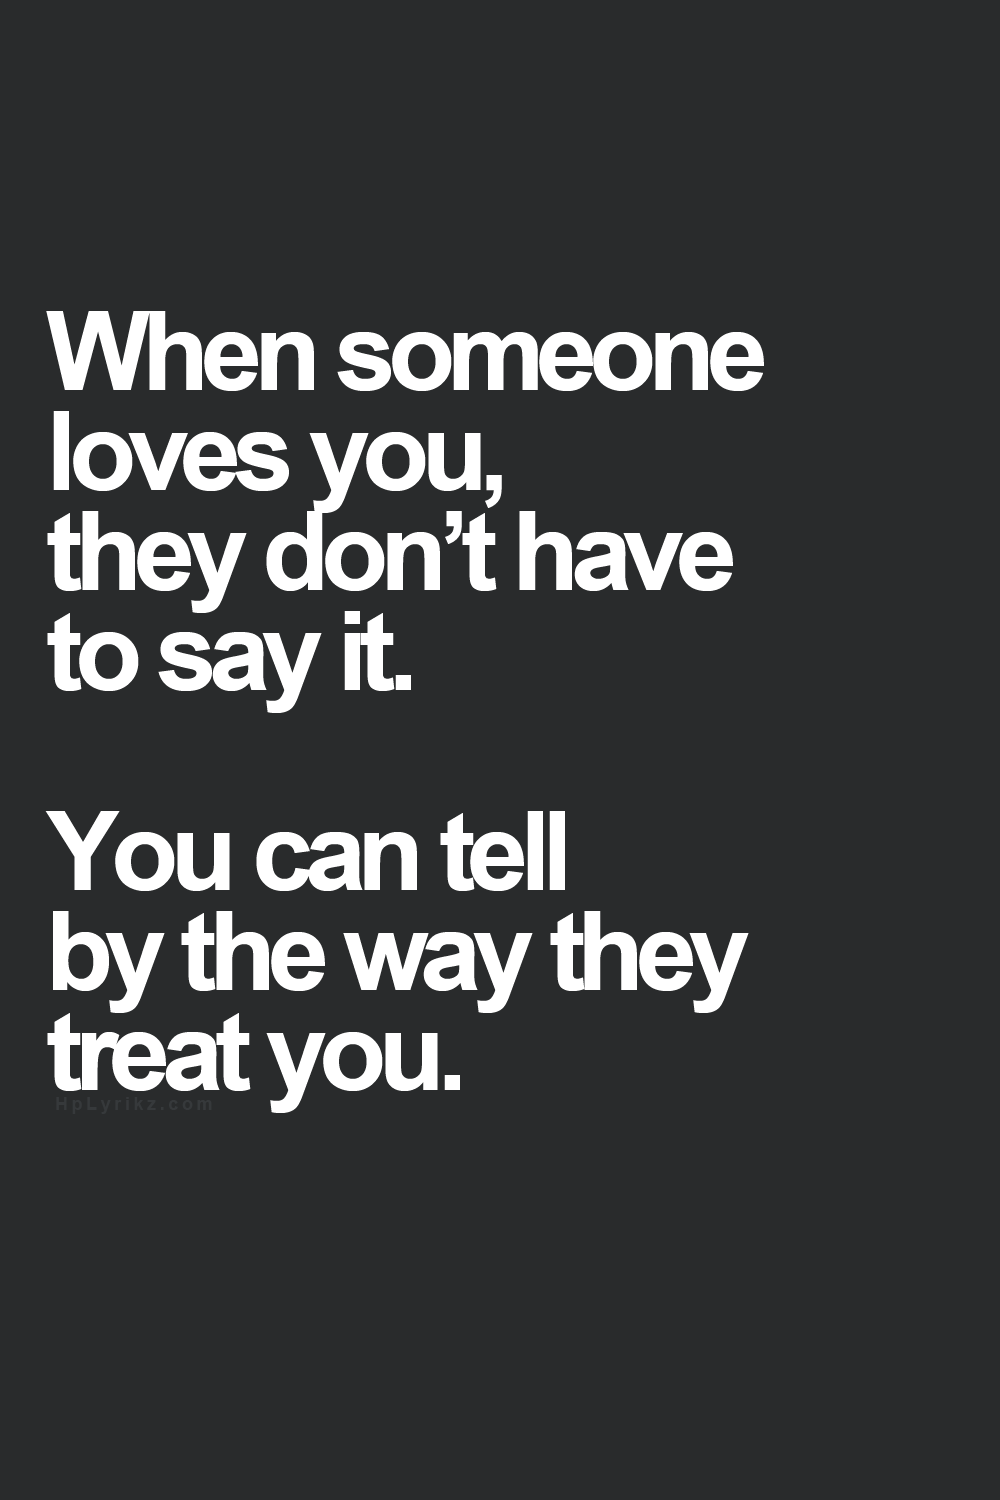 Quotes to say to someone you like